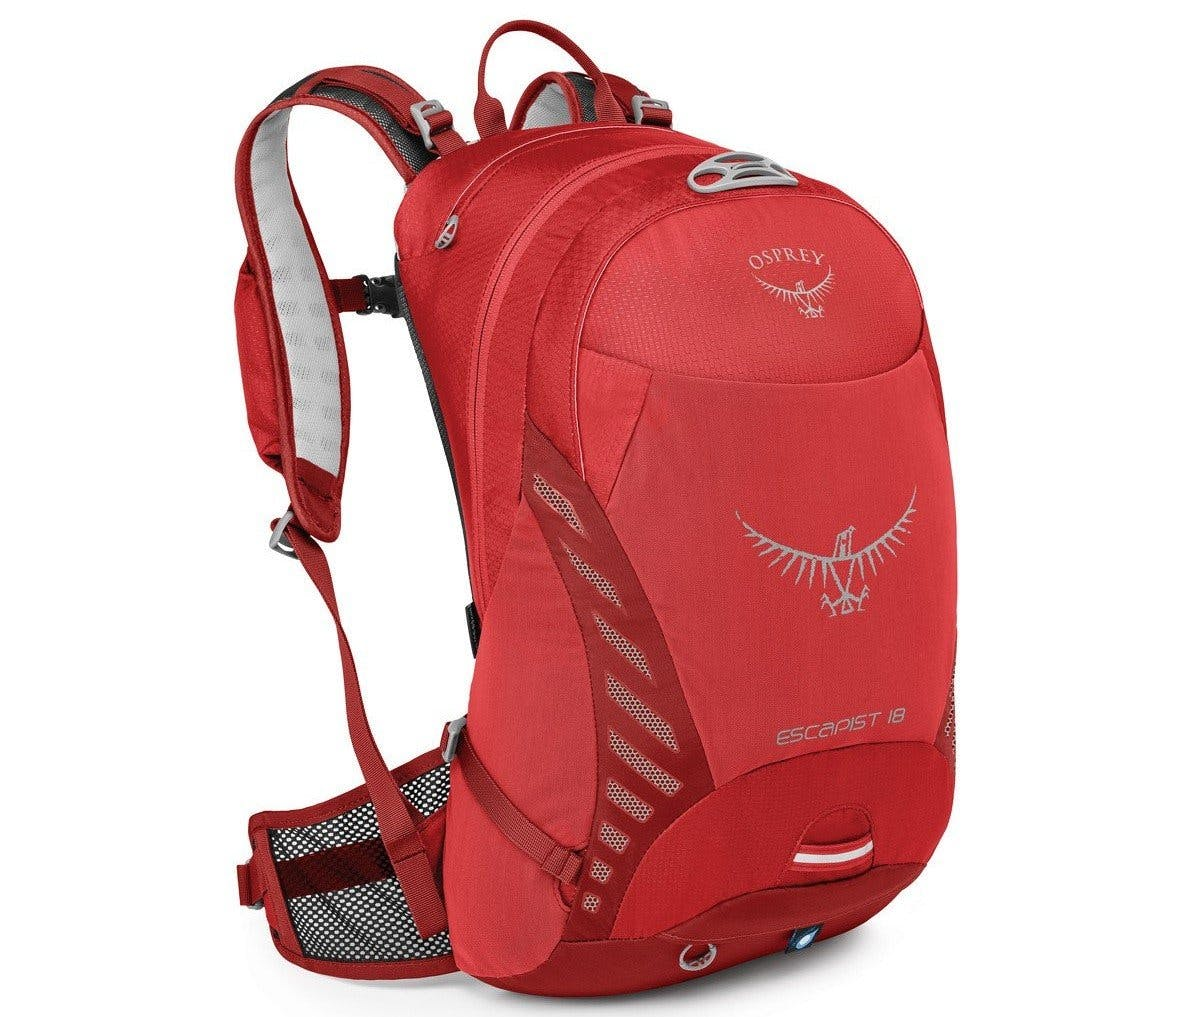 A red Osprey backpack. The perfect accessory for walking to work, running to work or cycling to work.